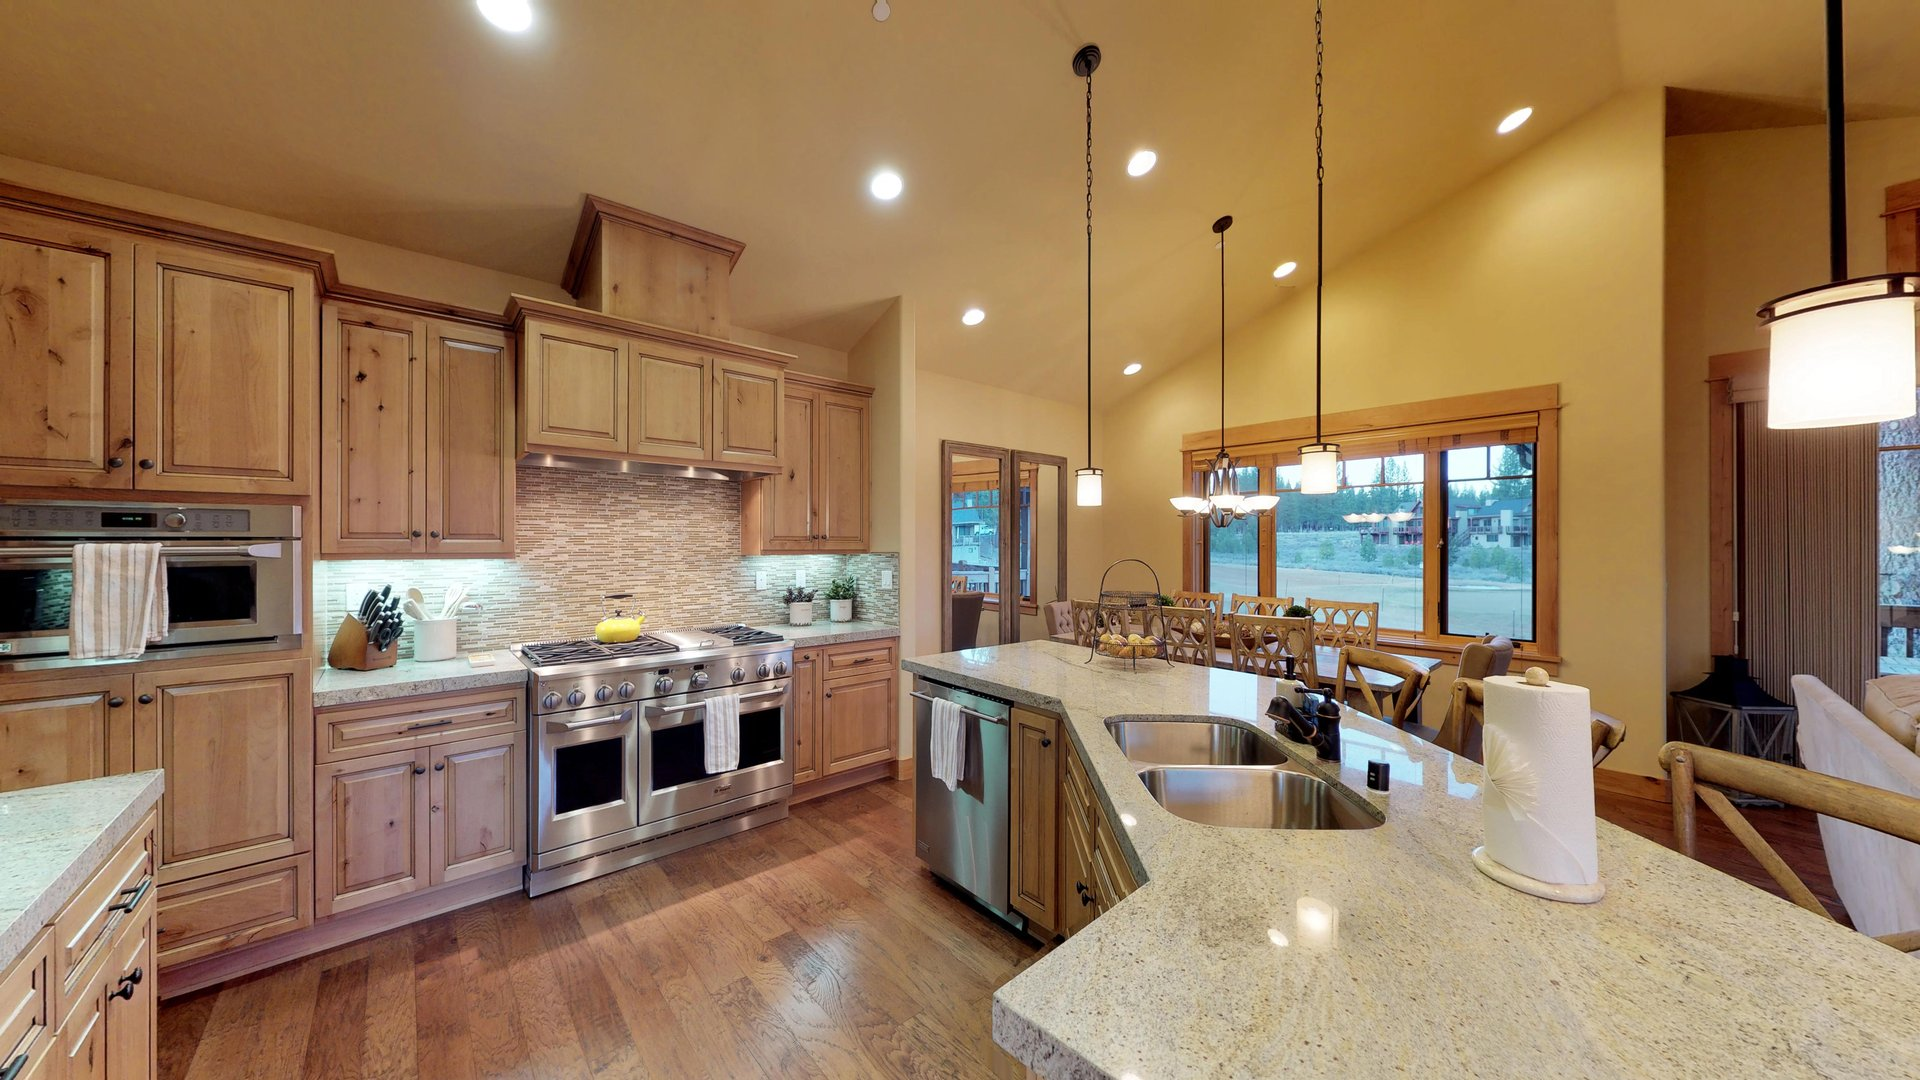 Luxury Kitchen Features Plenty of Cabinet and Counter Space.